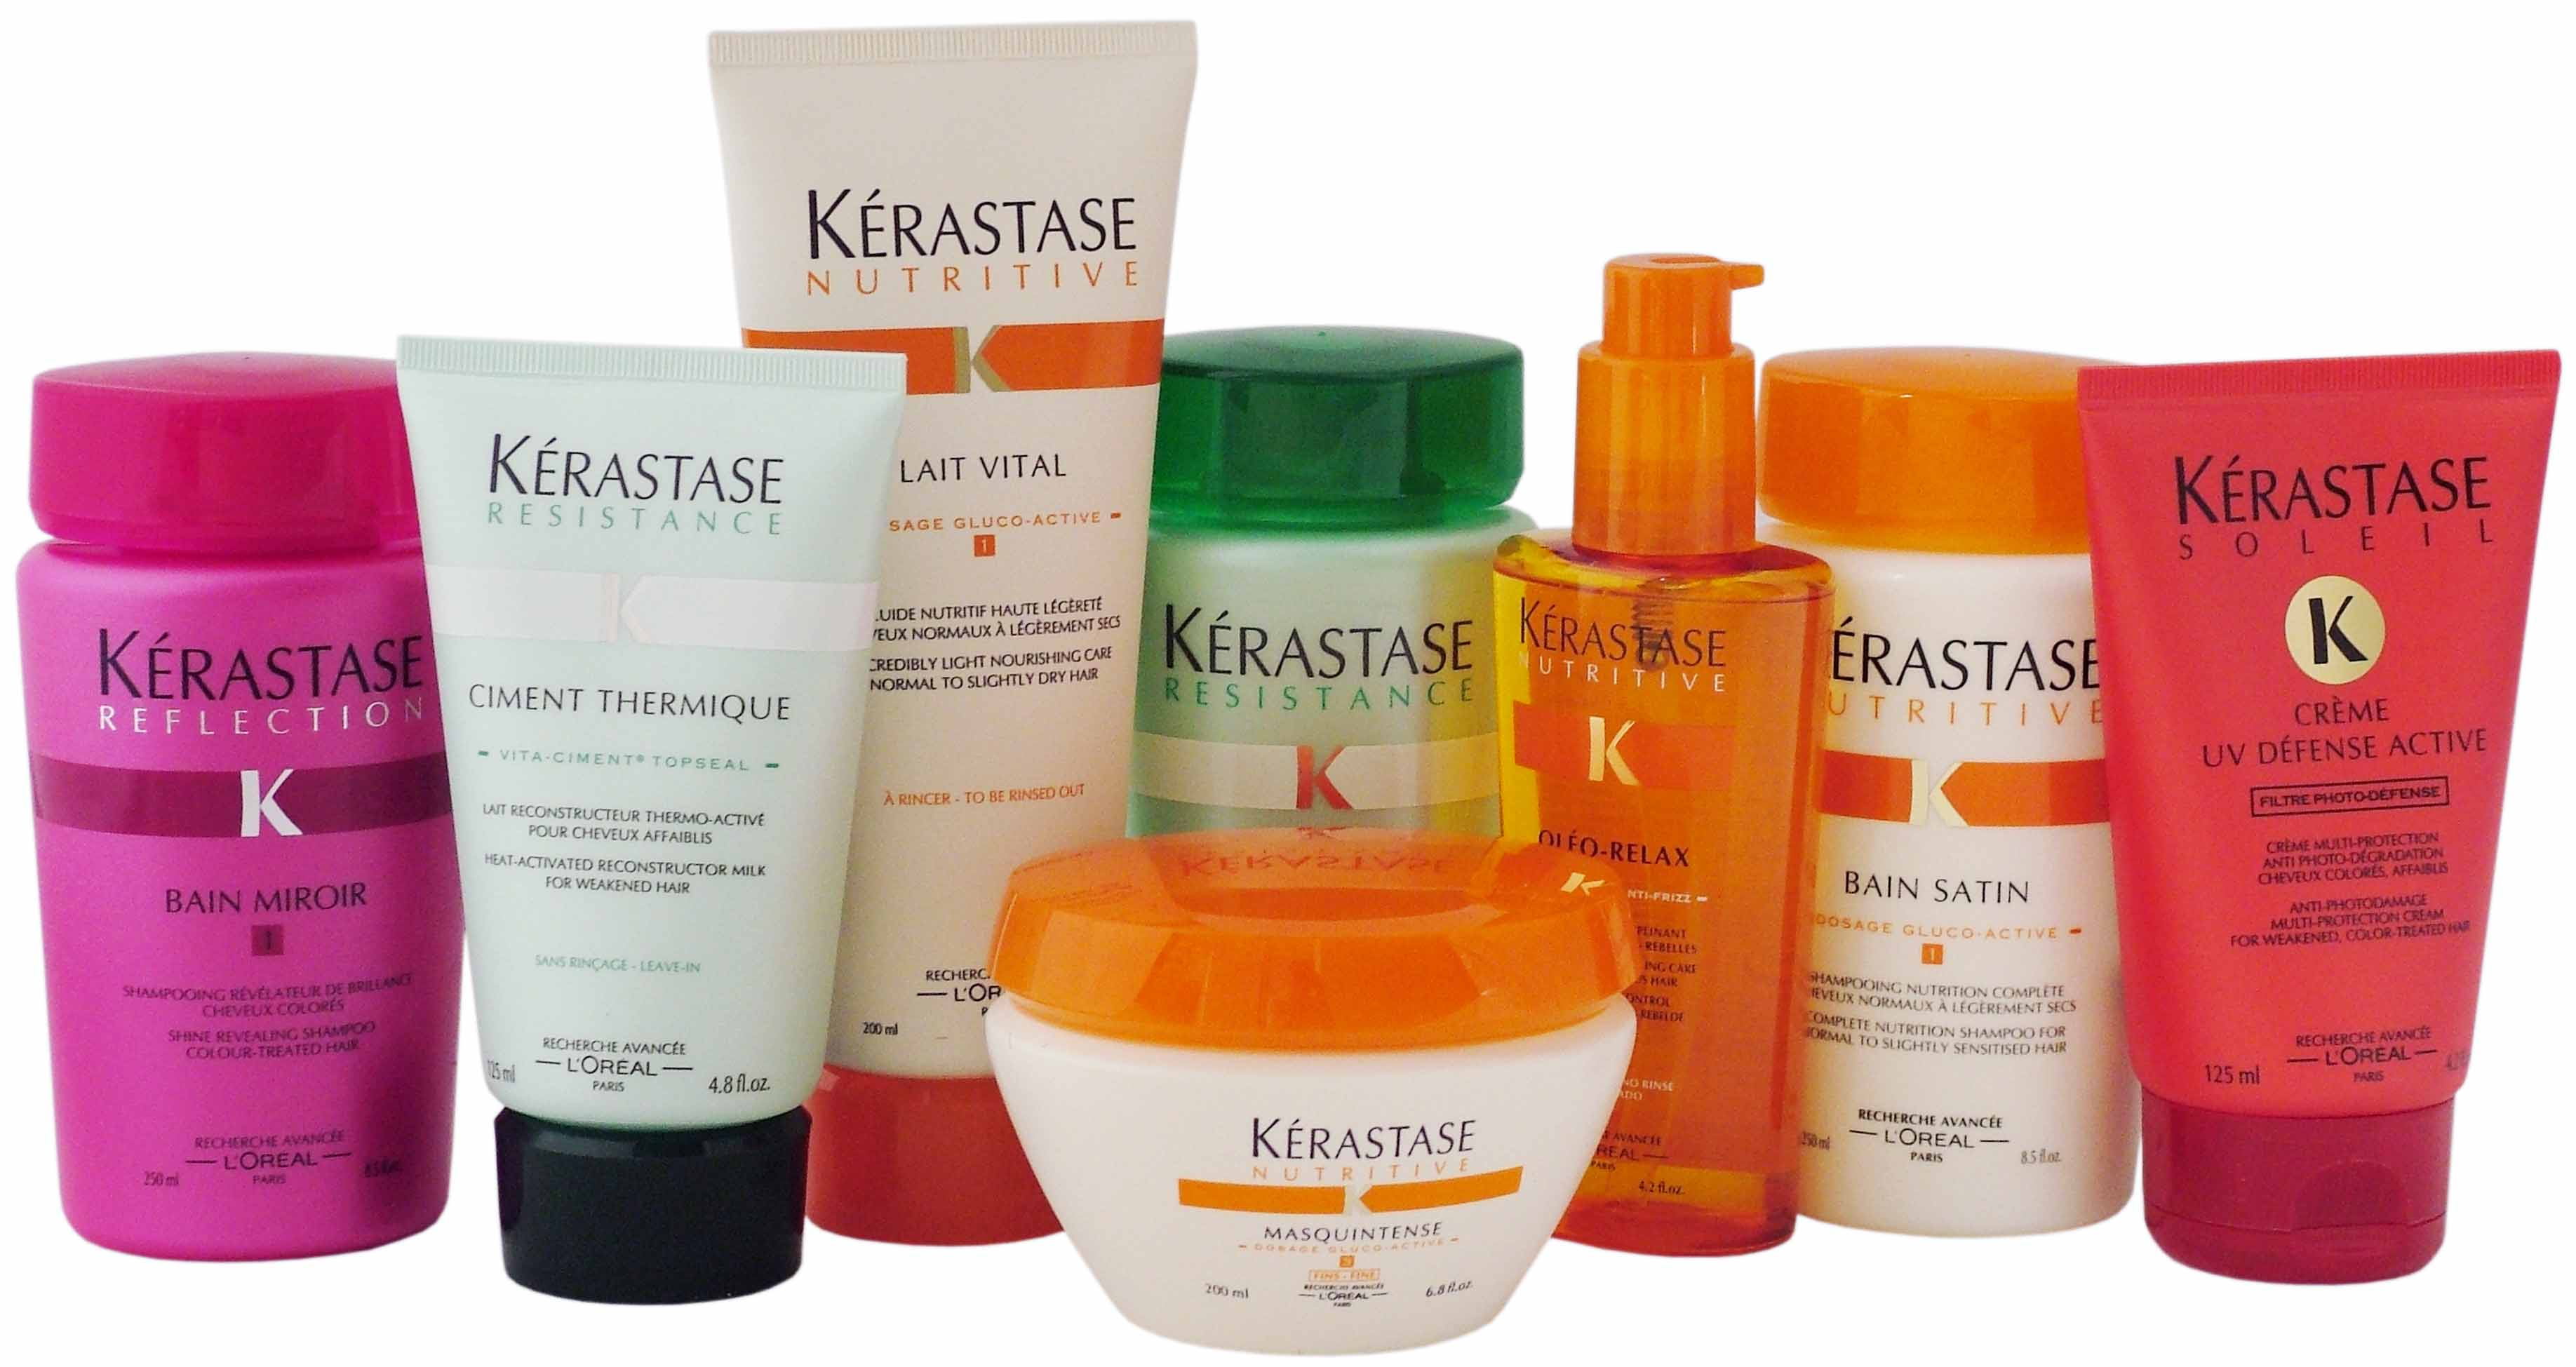 Productos Kérastase en Cosmetic Club